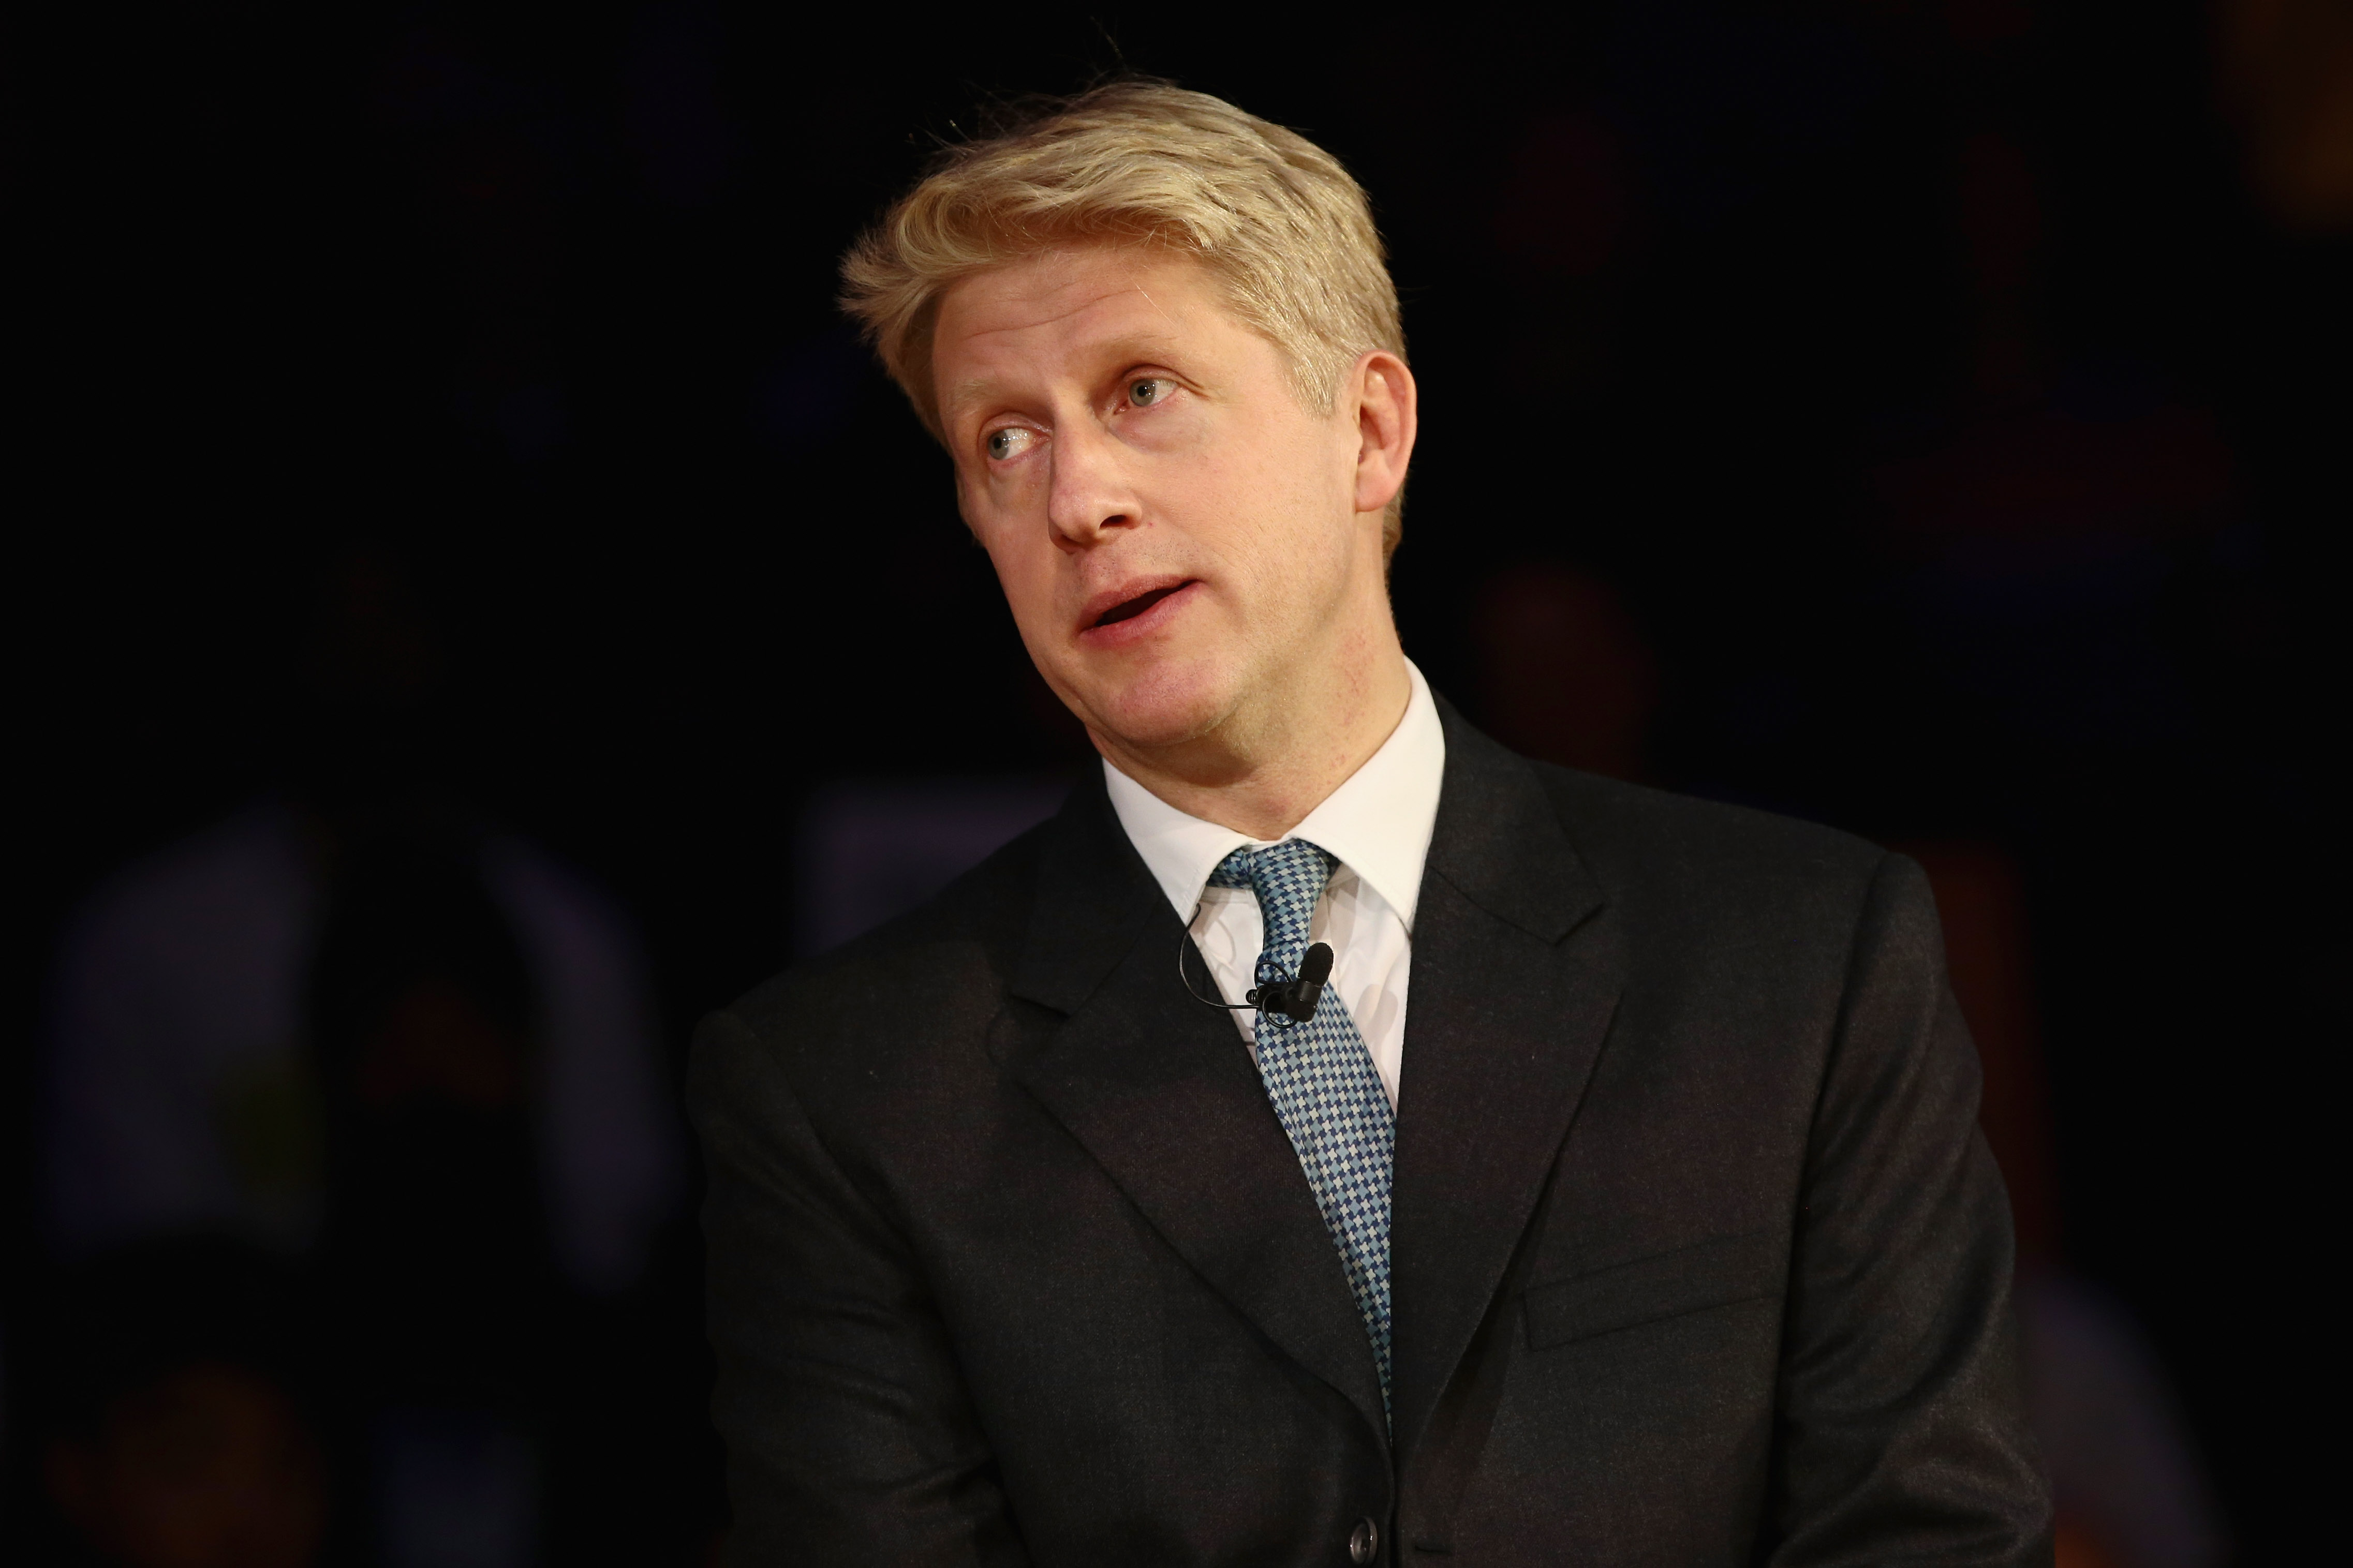 LONDON, ENGLAND - NOVEMBER 14: Secretary of State for Transport Jo Johnson speaks onstage during a pro-remain a rally rejecting the the Prime Minister's Brexit deal on November 14, 2018 in London, England. Anti-Brexit groups 'Best for Britain' and 'The People's Vote Campaign' are holding a joint rally tonight to call on MPs to say they are not buying the Prime Minister's Brexit deal. (Photo by Jack Taylor/Getty Images)